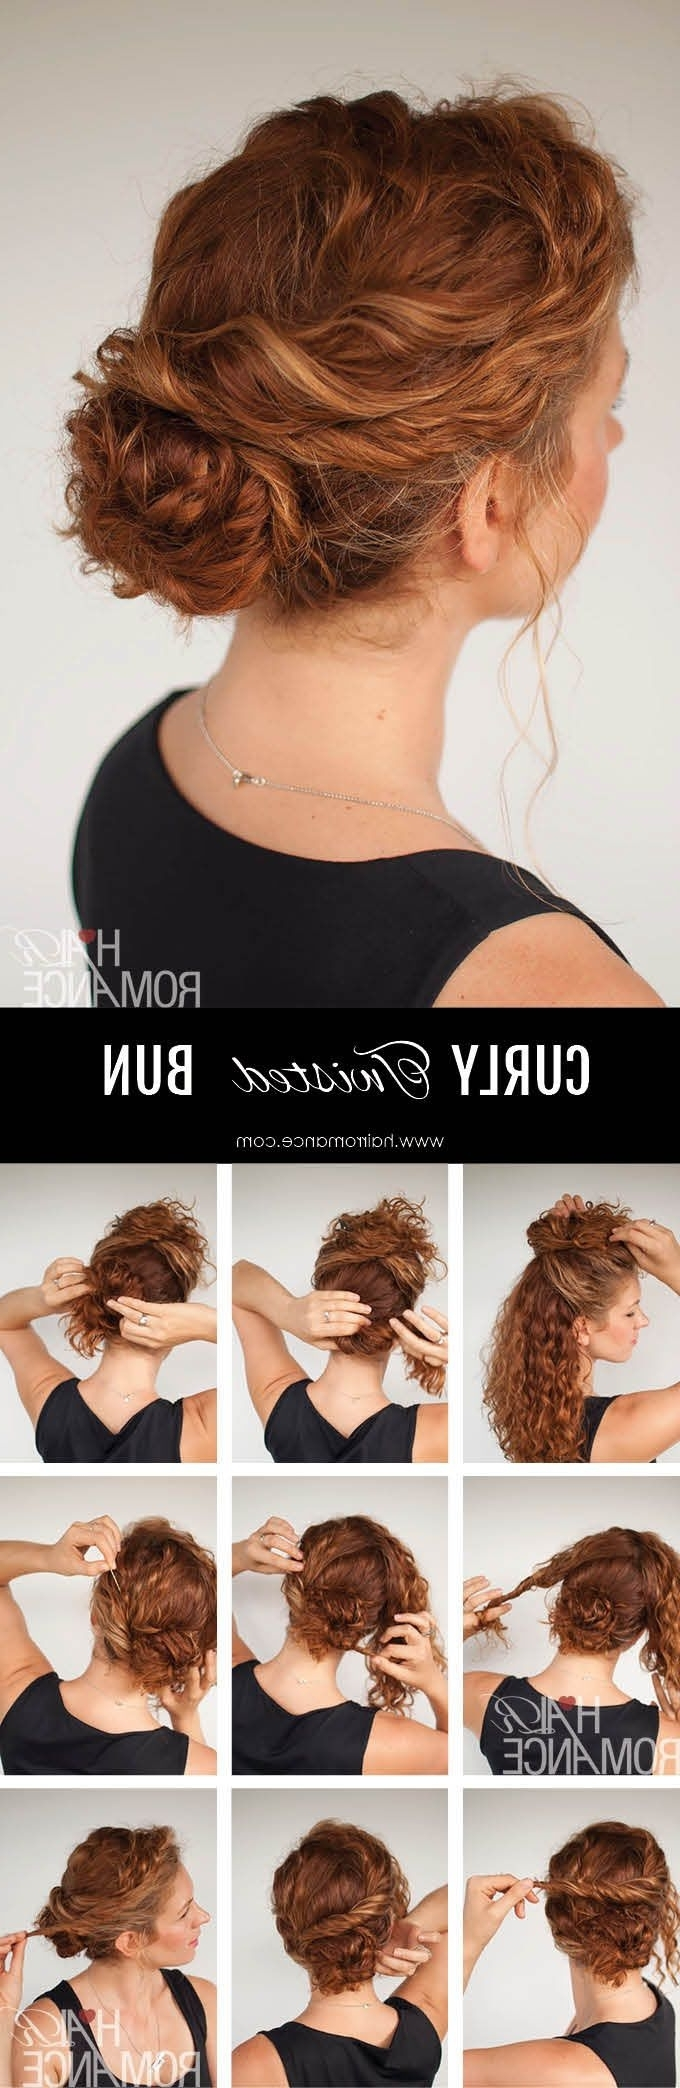 Find An Everyday Easy Updo For Faster Styling | Hair Romance Curly Regarding Easy Updos For Long Curly Hair (View 11 of 15)